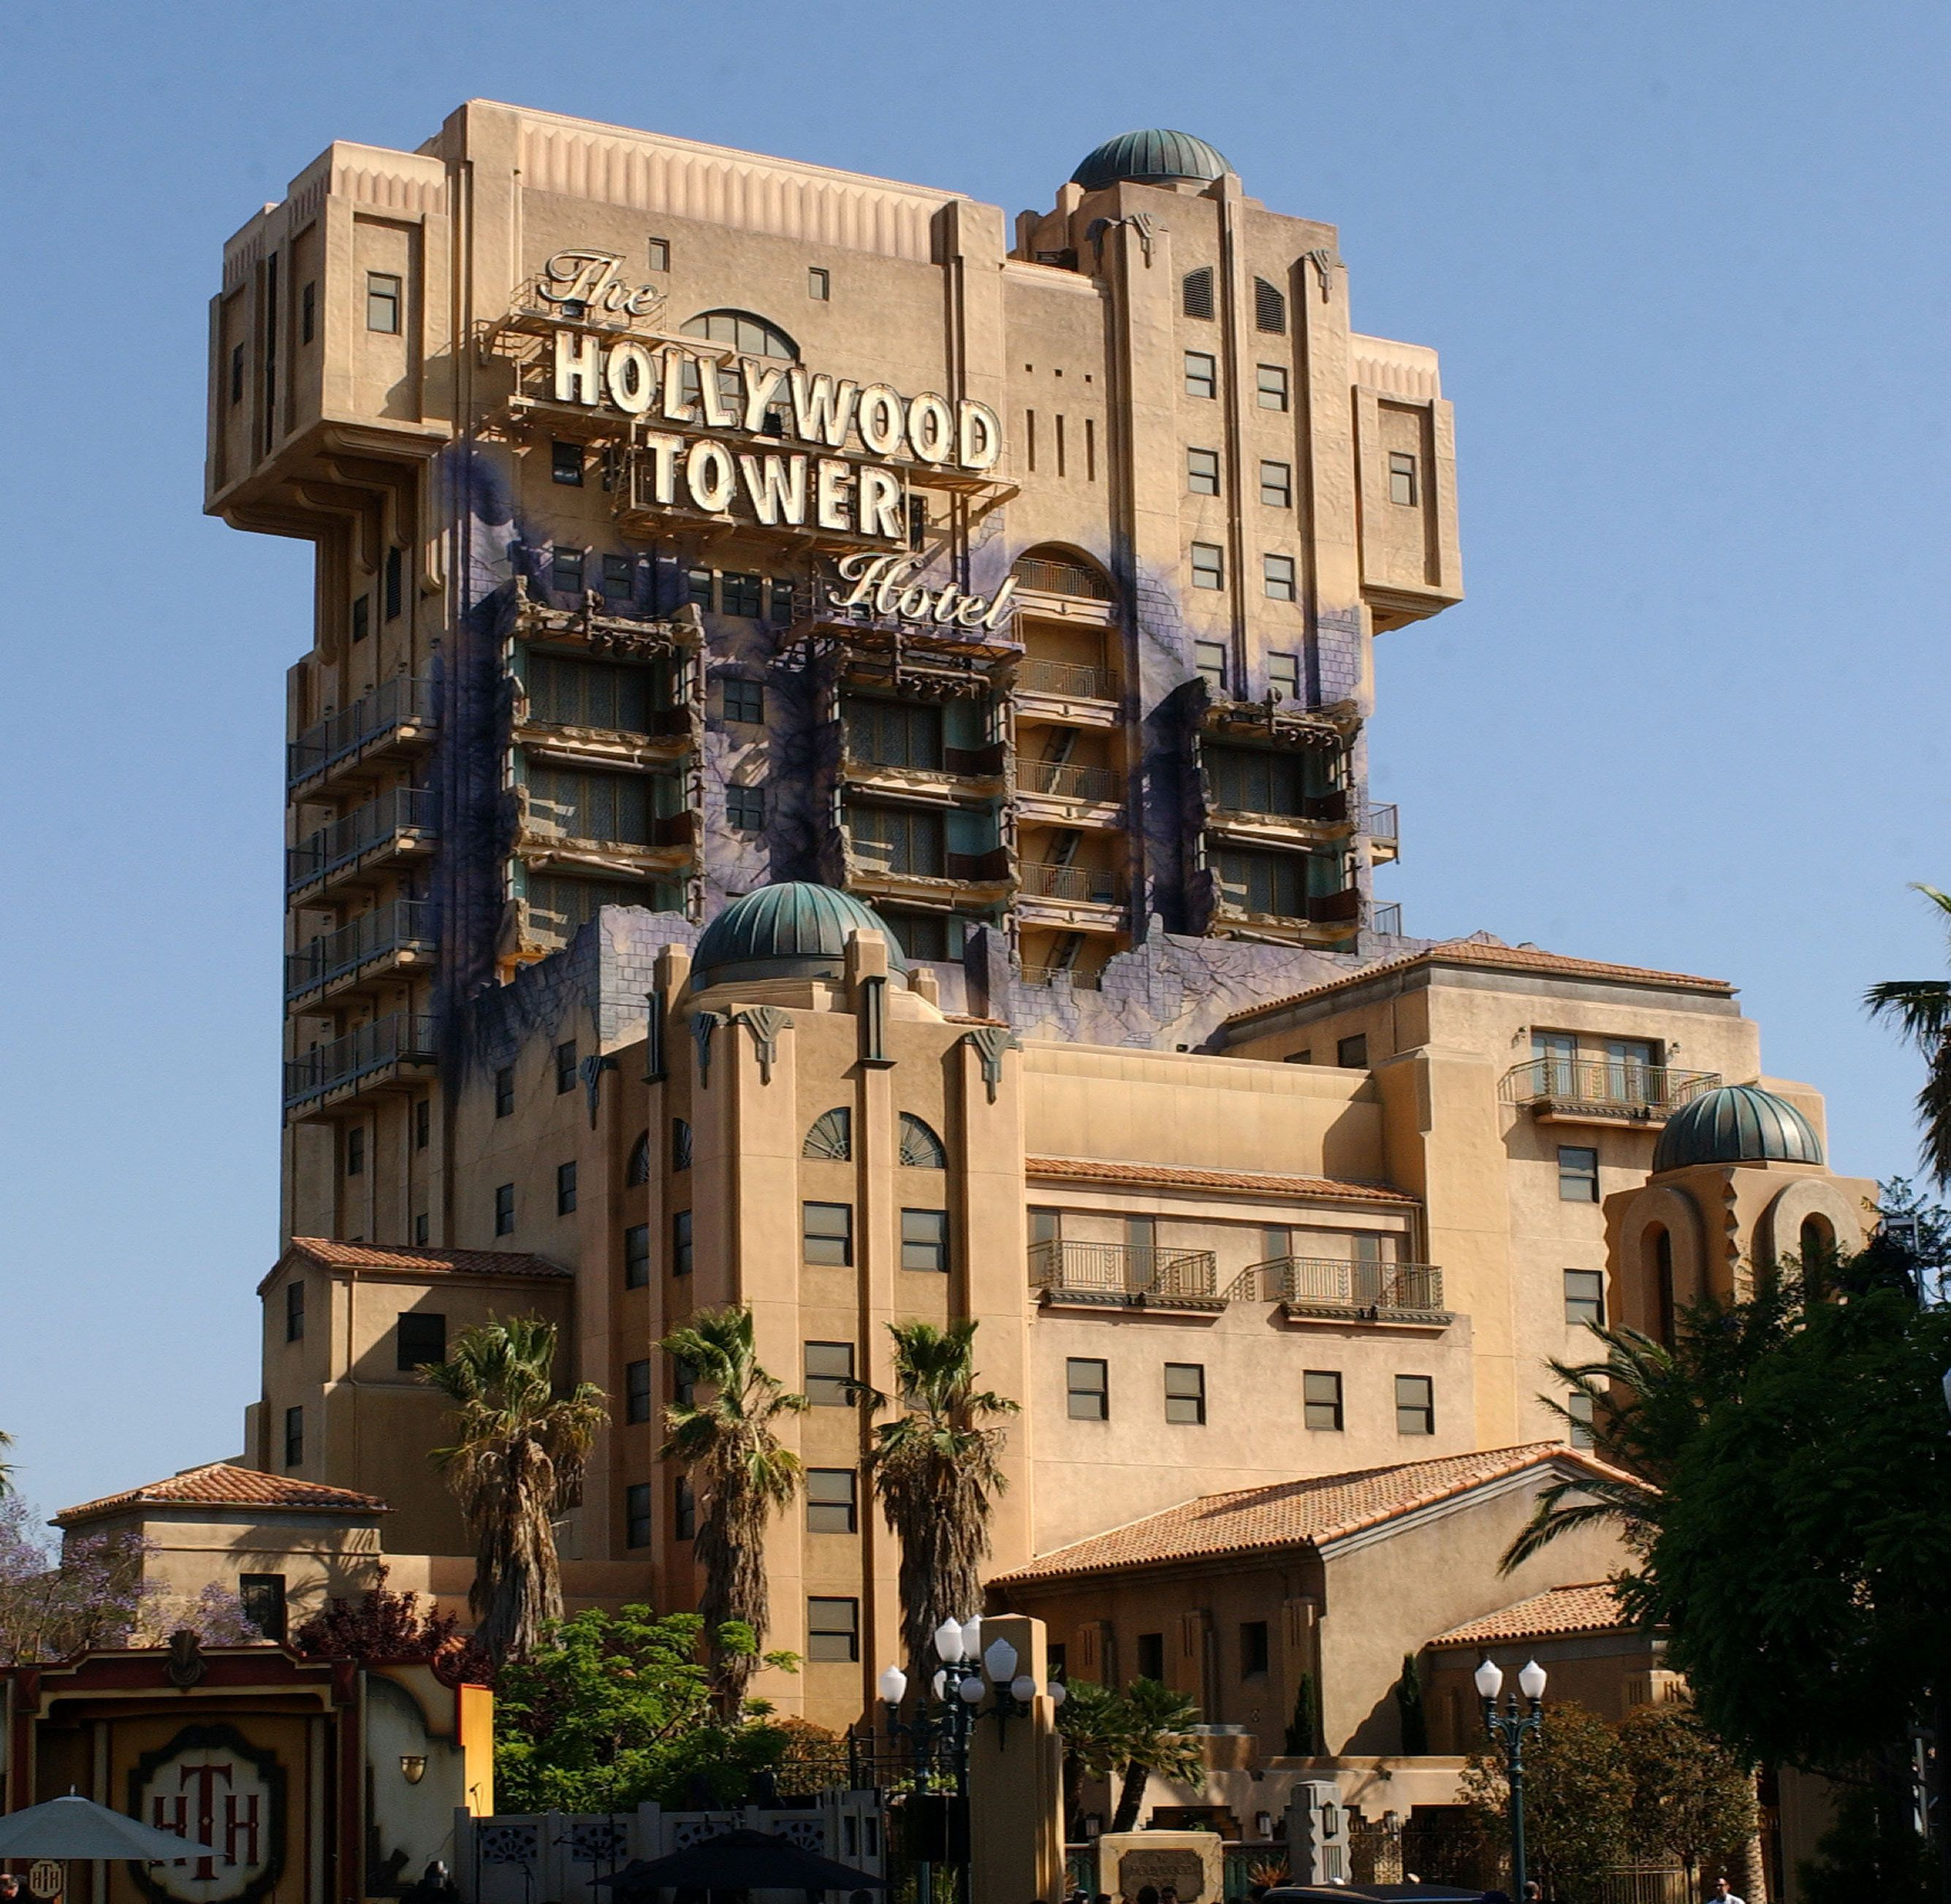 The Hollywood Tower Of Terror Hotel attraction during The Twilight Zone Tower of Terror Opens at Disney's California Adventure at California Adventure in Anaheim, California, United States. (Photo by Gregg DeGuire/WireImage)